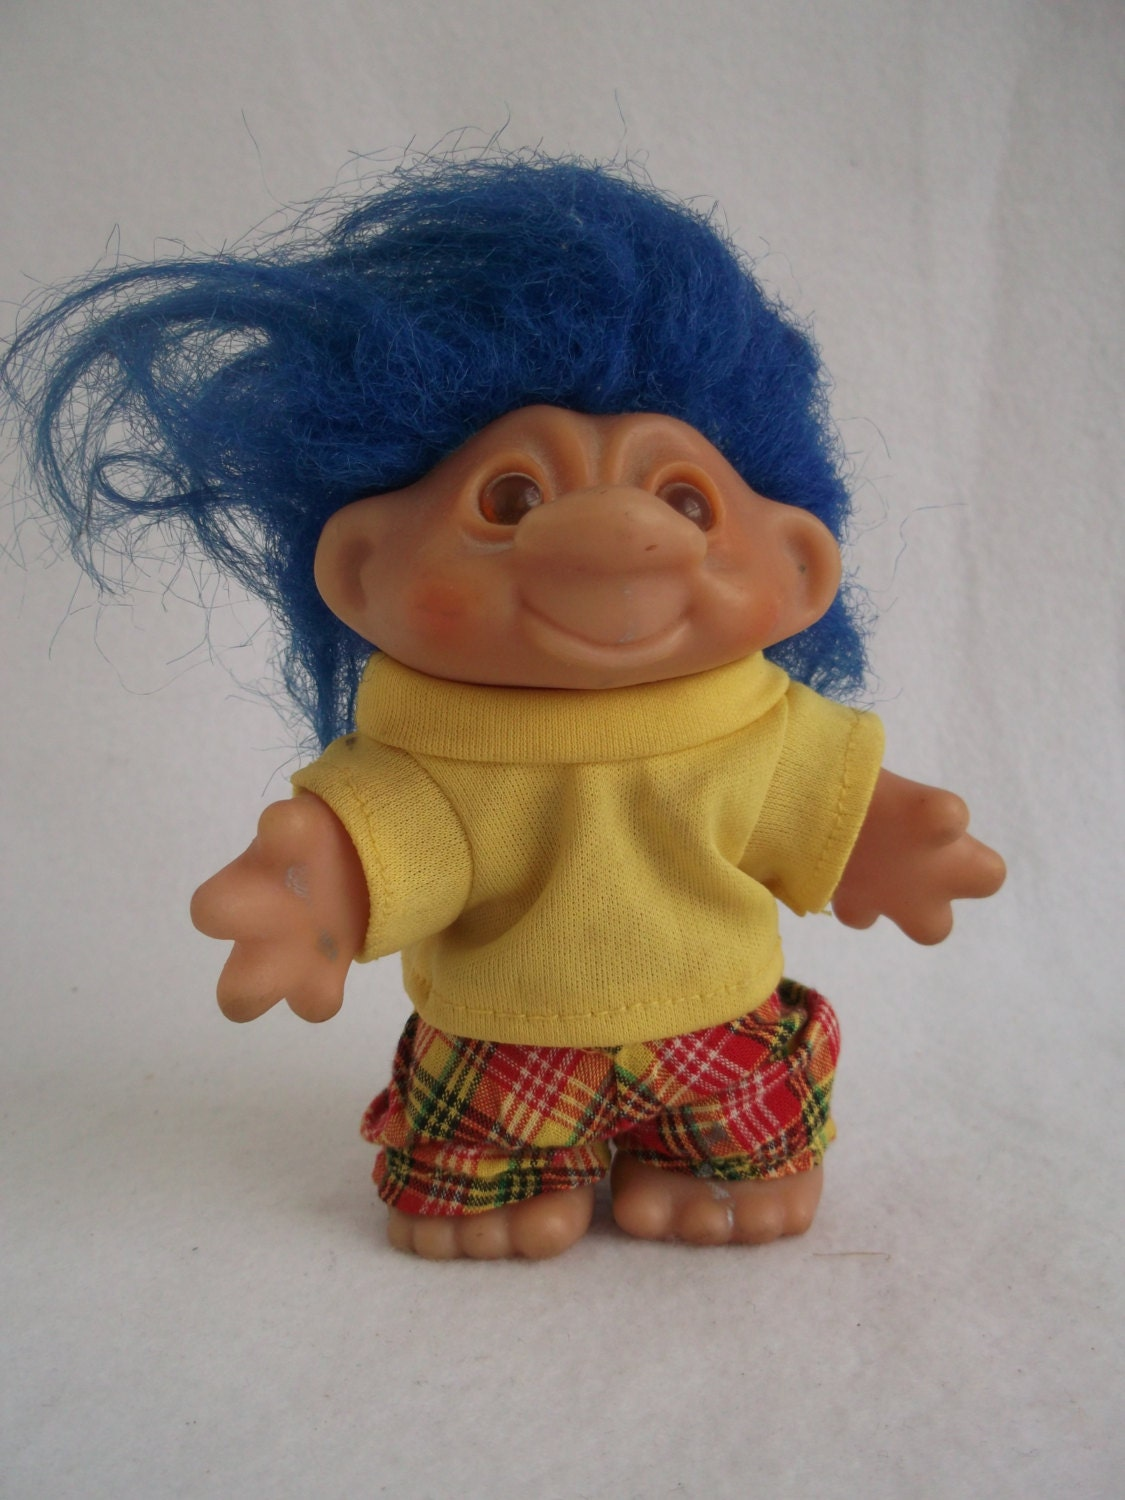 80s Toy Dolls : Troll doll toy from the s by pompastoycollection on etsy